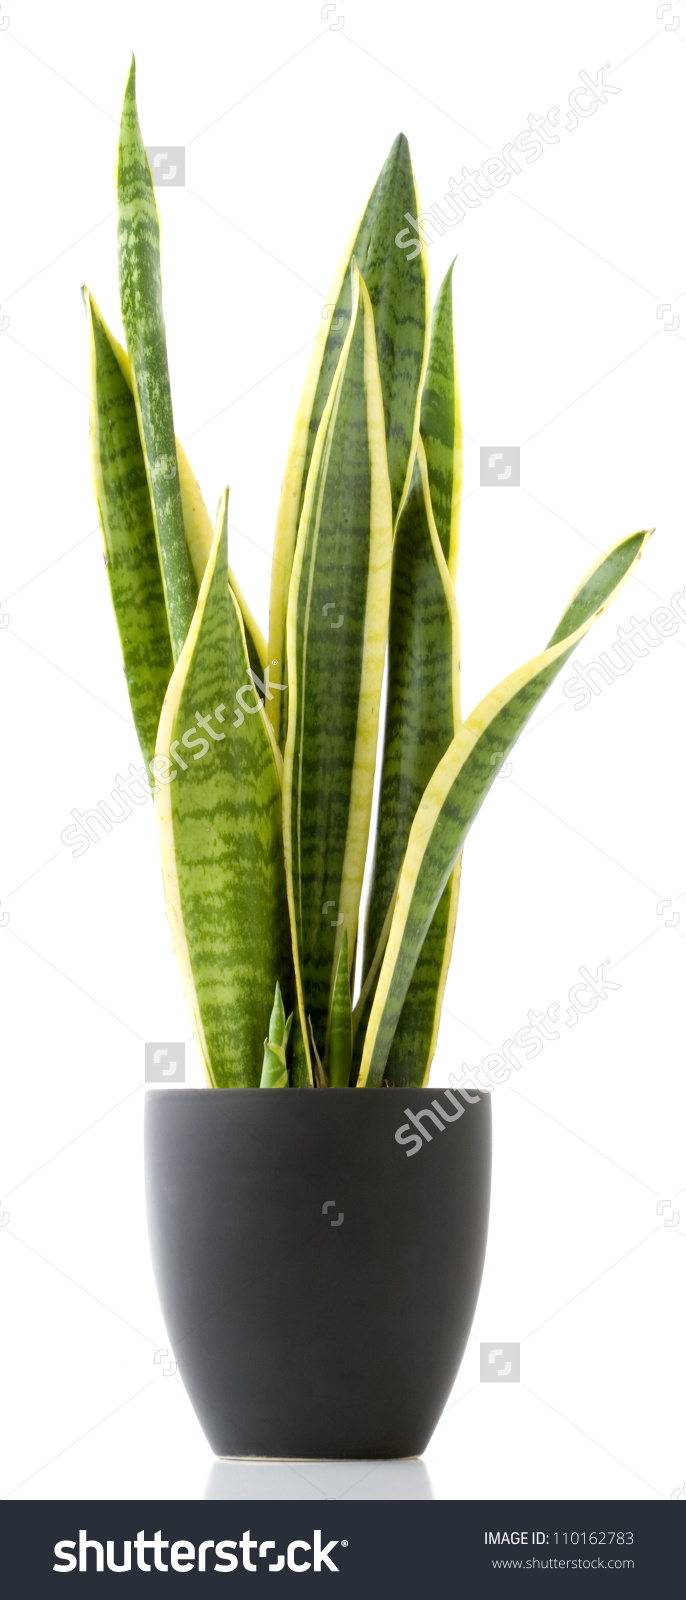 Houseplant Variegated Snake Plant Potted Plant Stock Photo.